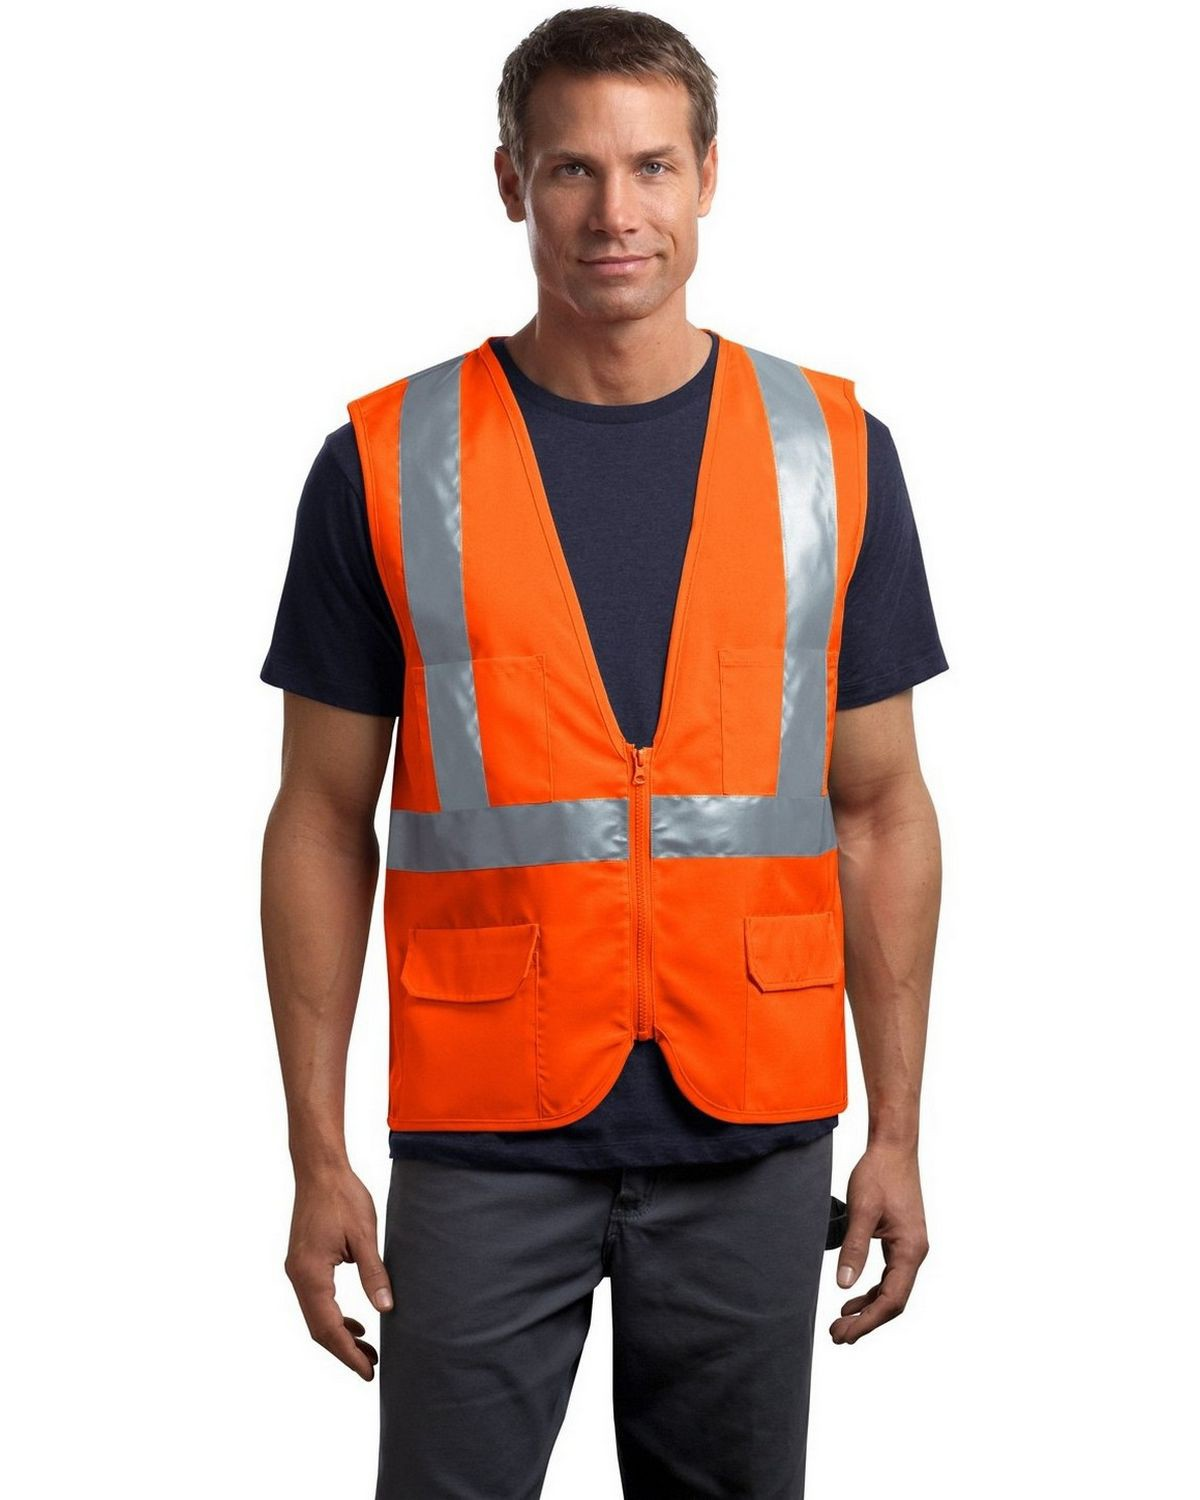 High Visibility Safety Work Vest Breathable Mesh Vest Crease-Resistance Workplace Safety Supplies Safety Clothing